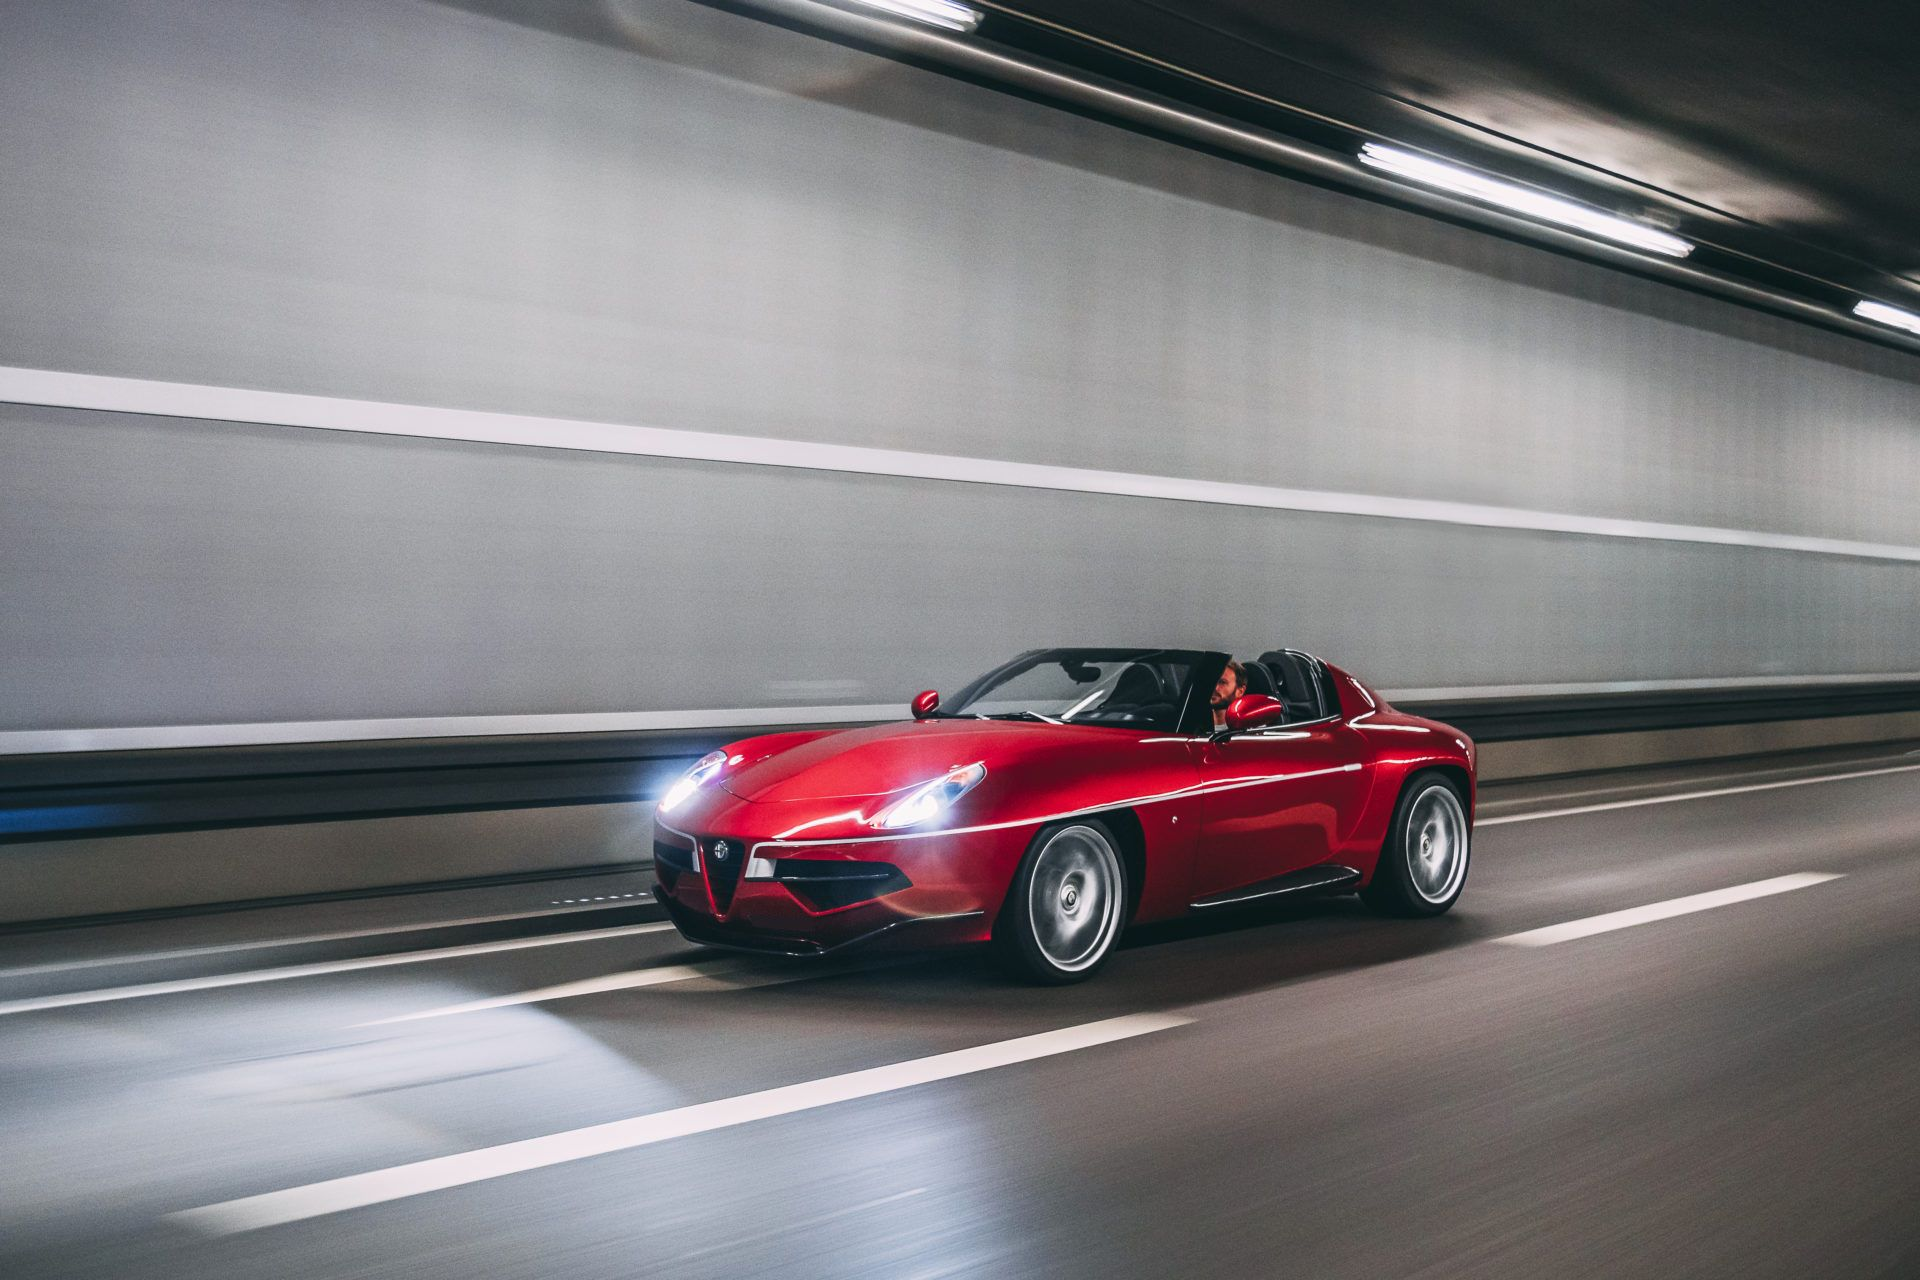 Alfa-Romeo-Disco-Volante-Spyder-for-sale-1